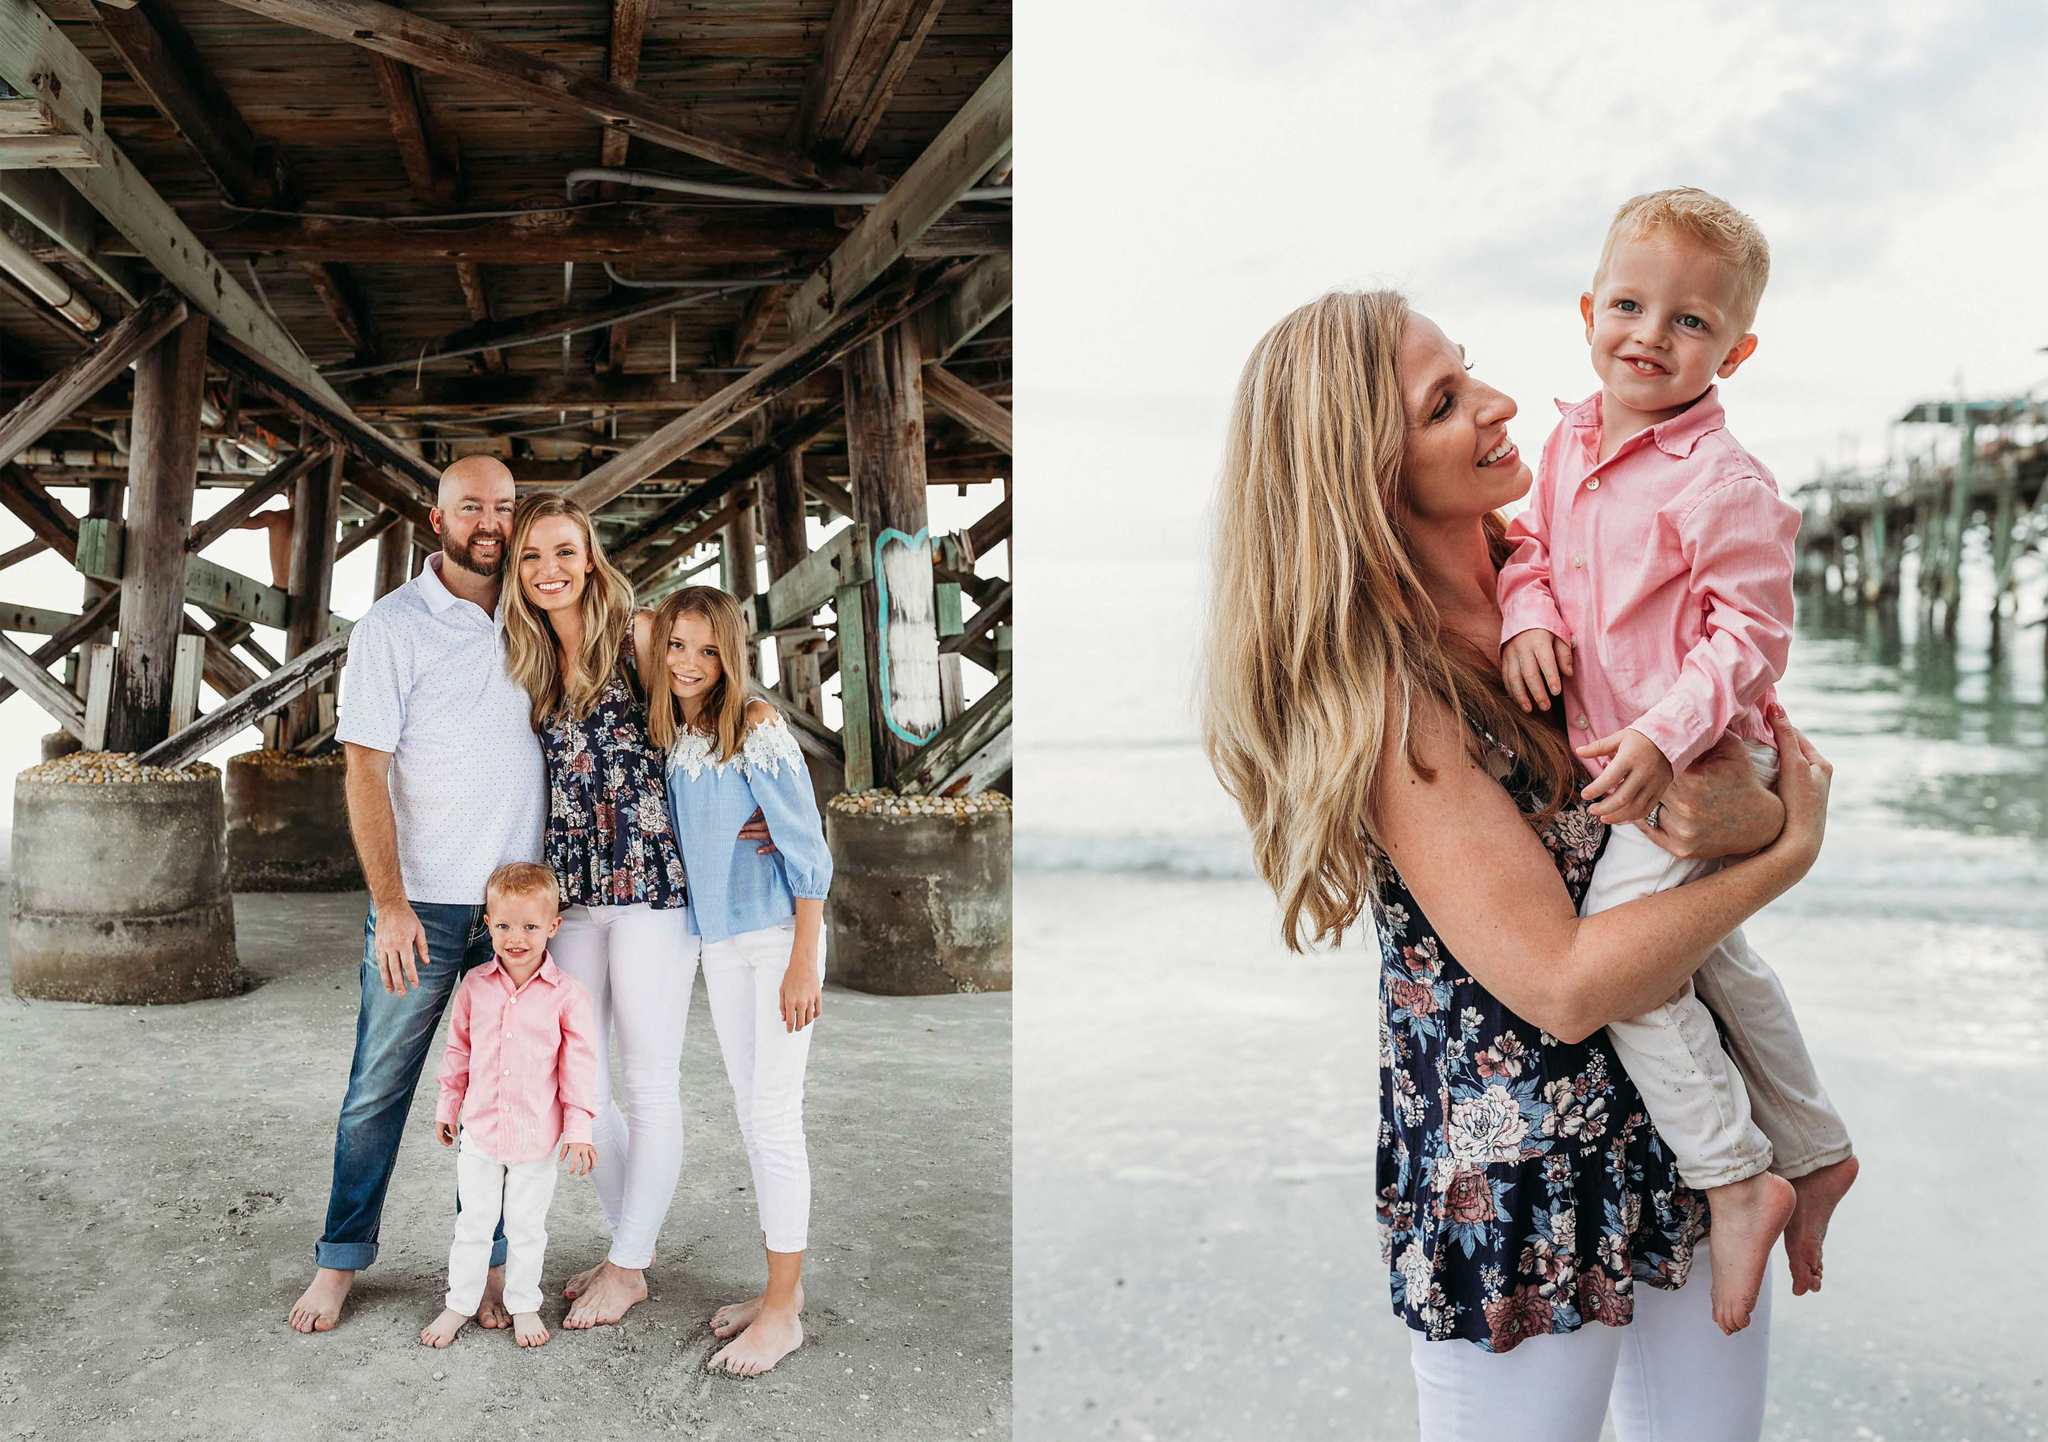 Tampa Family Photographer_Sheila diptych for blog 2.jpg